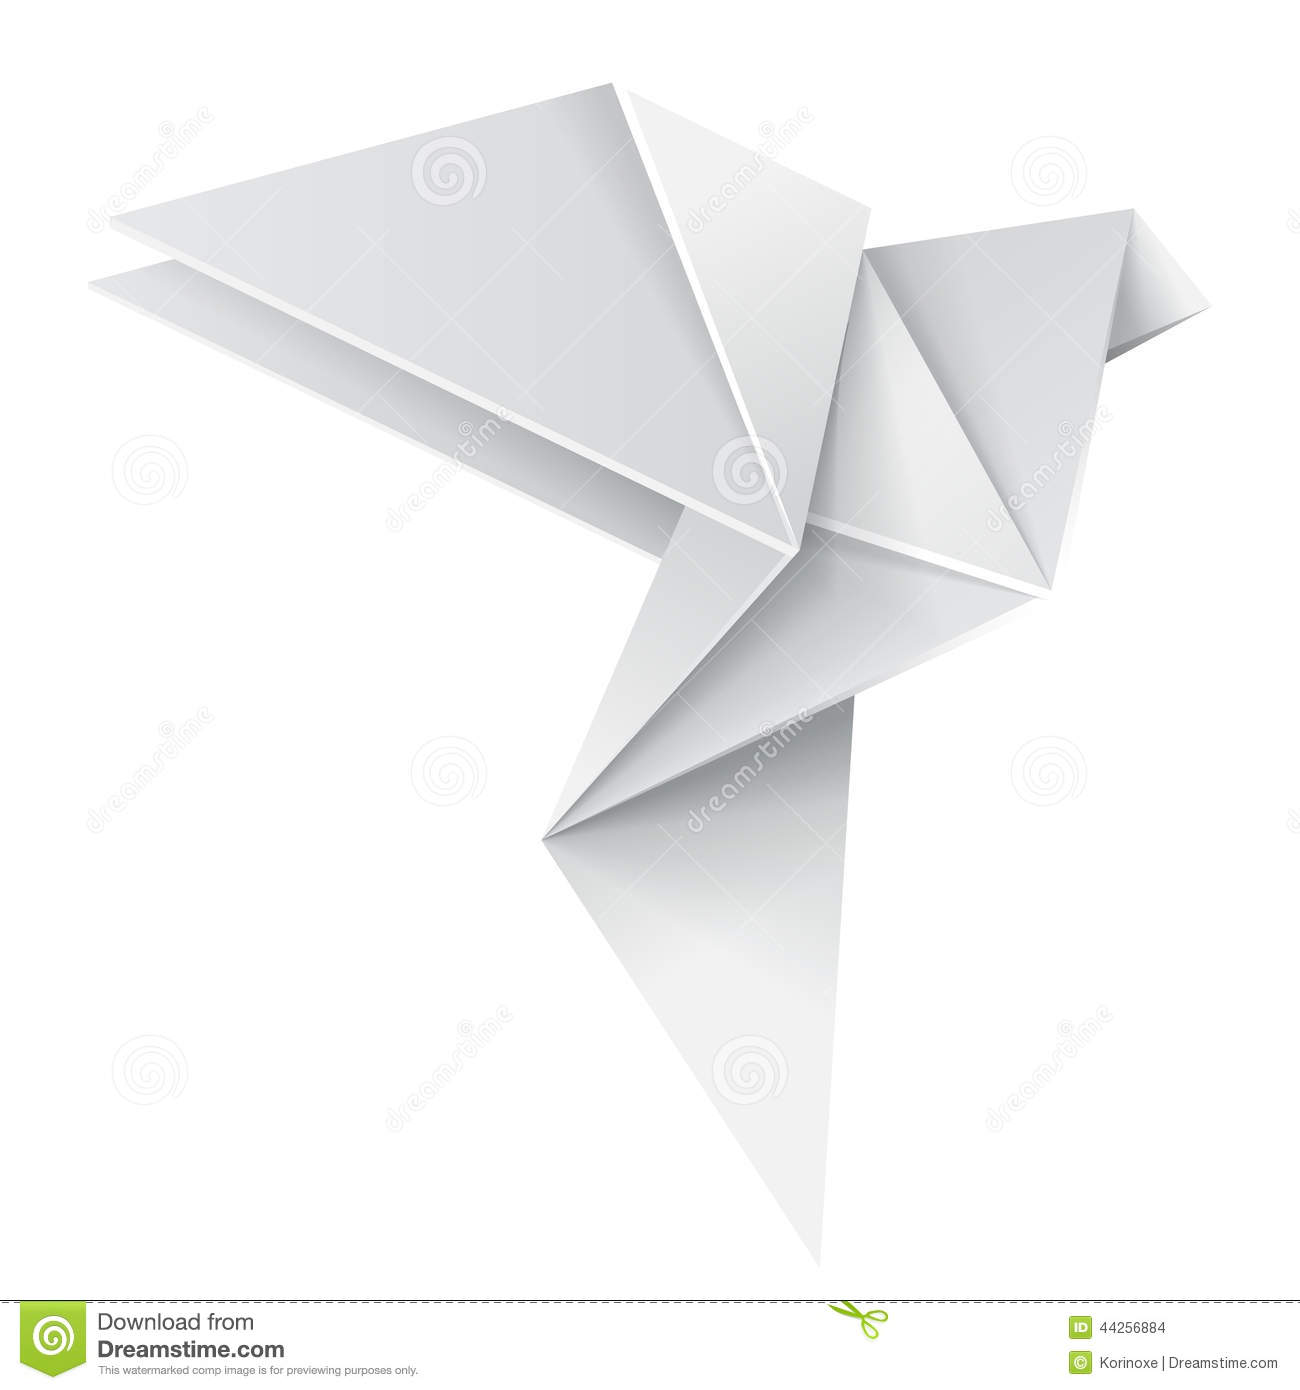 Origami dove stock vector. Illustration of folded ... - photo#26